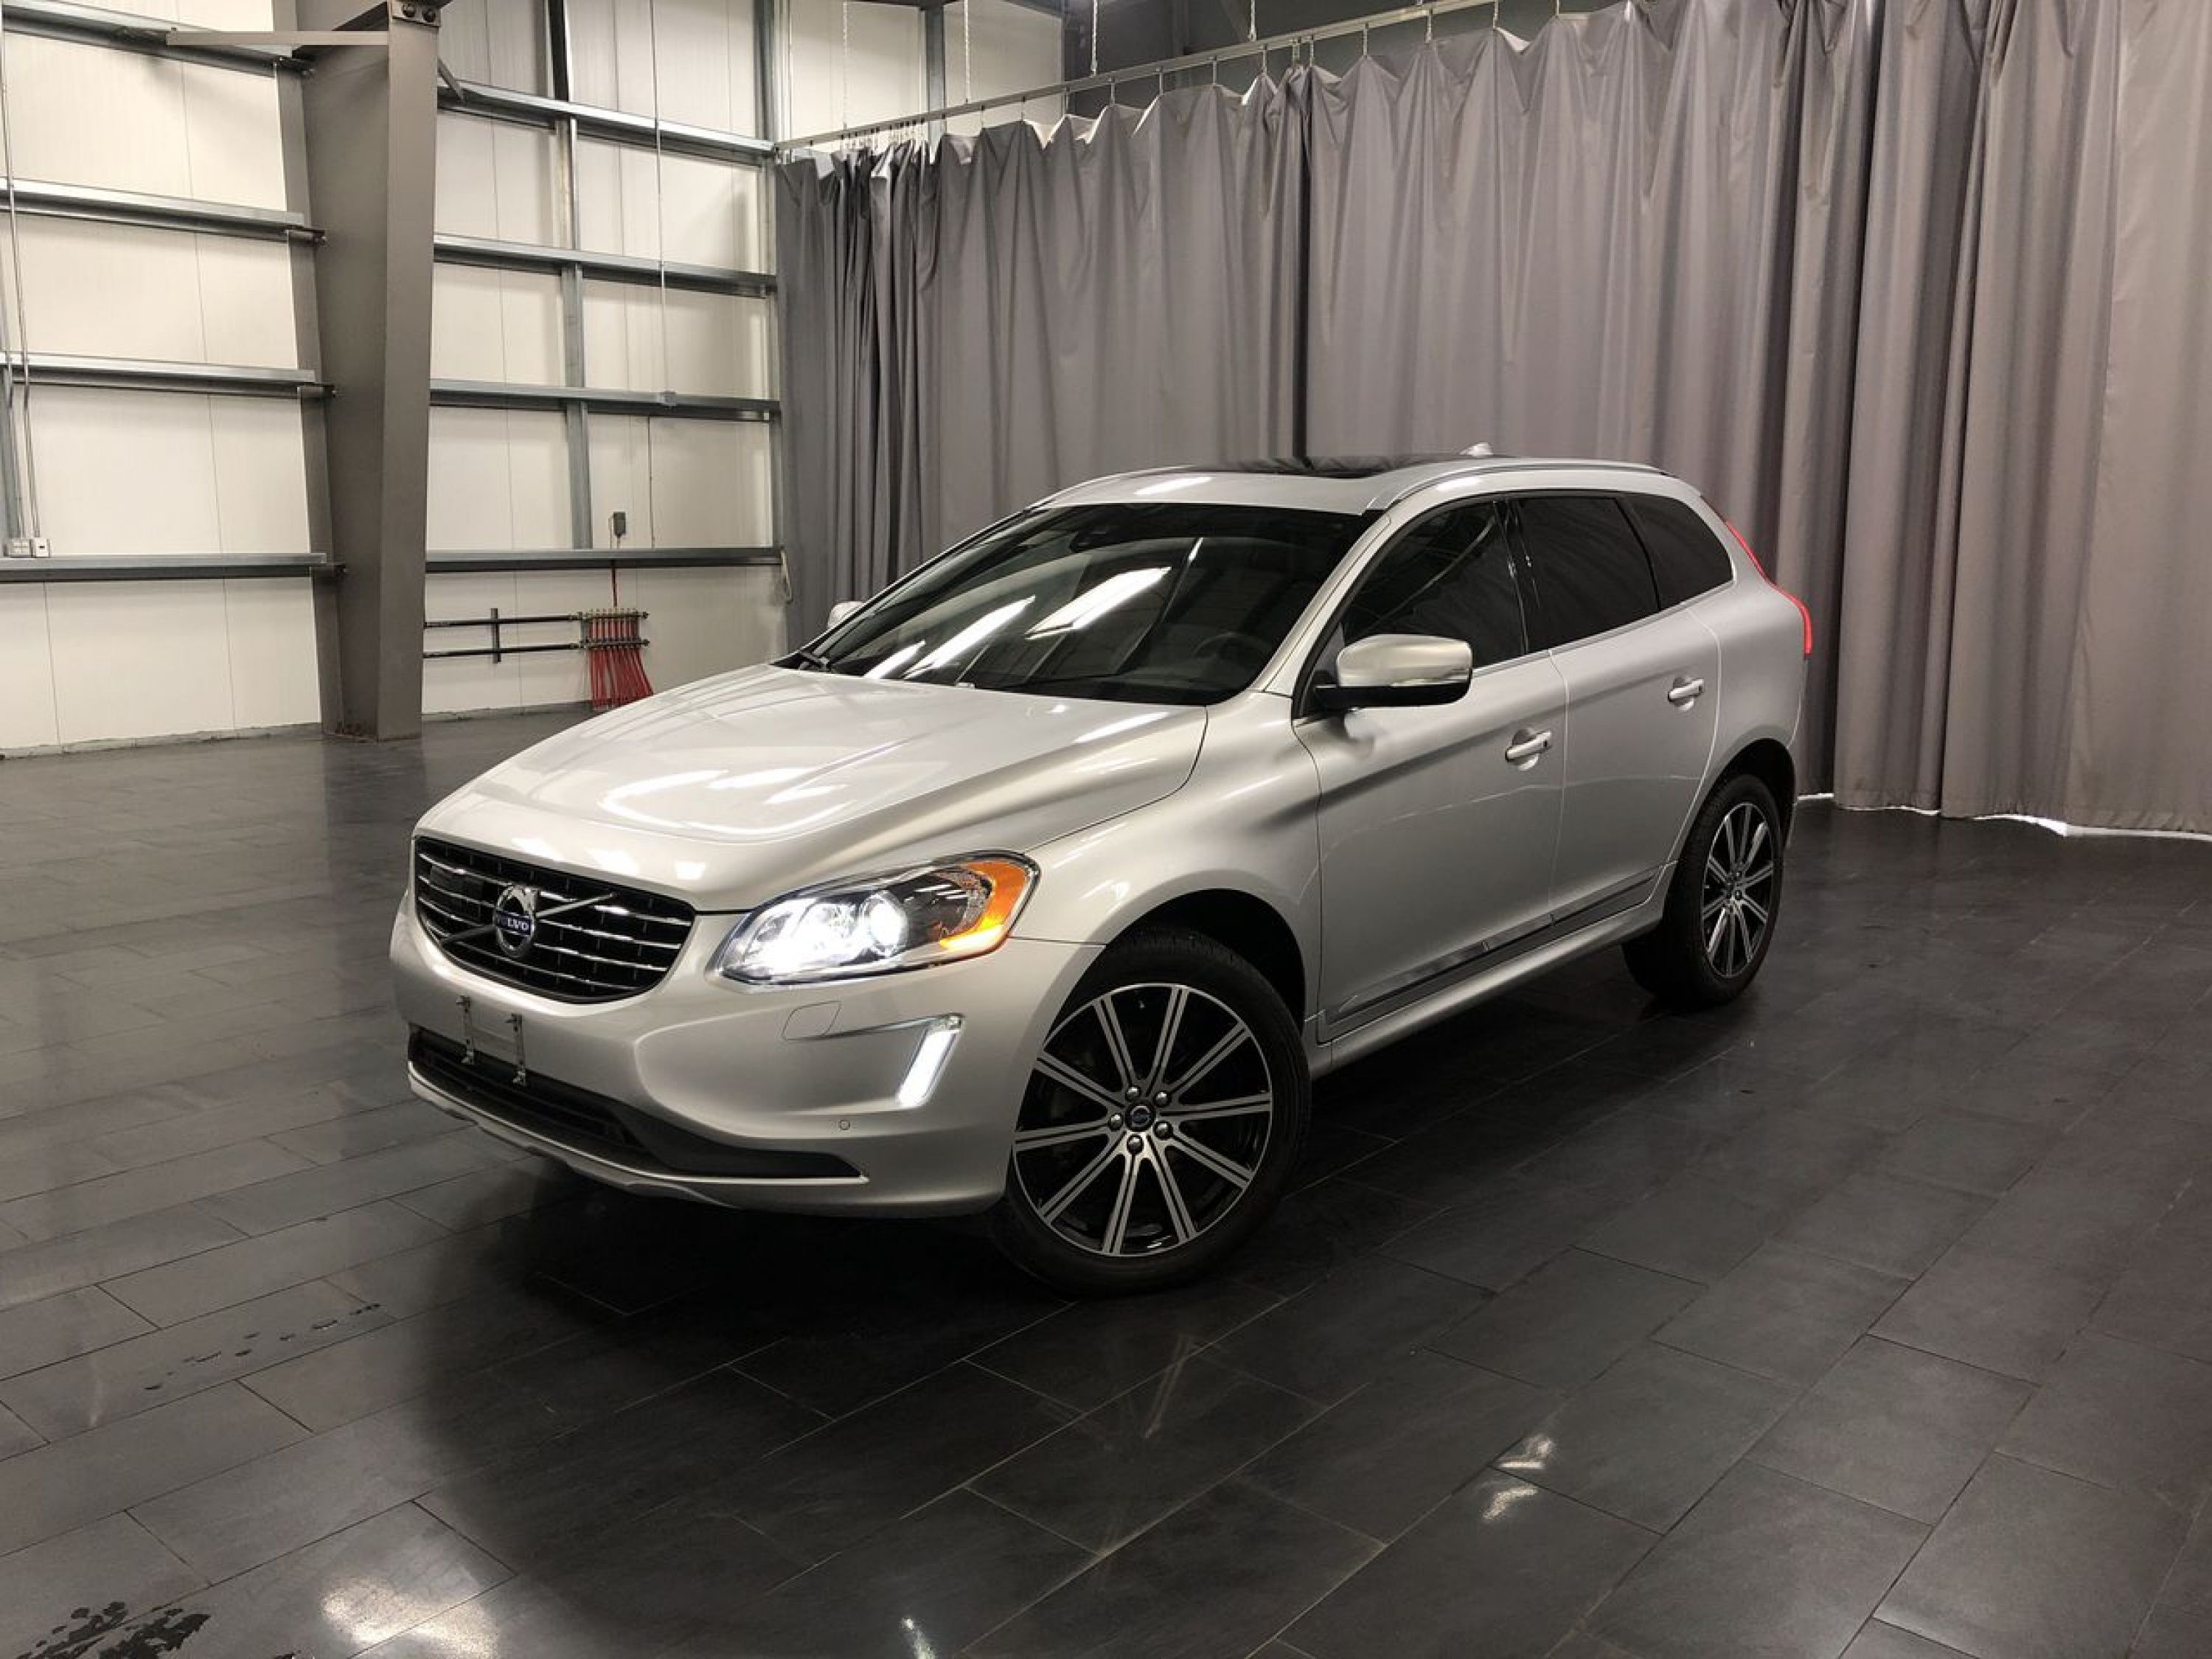 Pre-Owned 2017 Volvo XC60 T6 Drive-E Premier *Winter Tire Package Included*